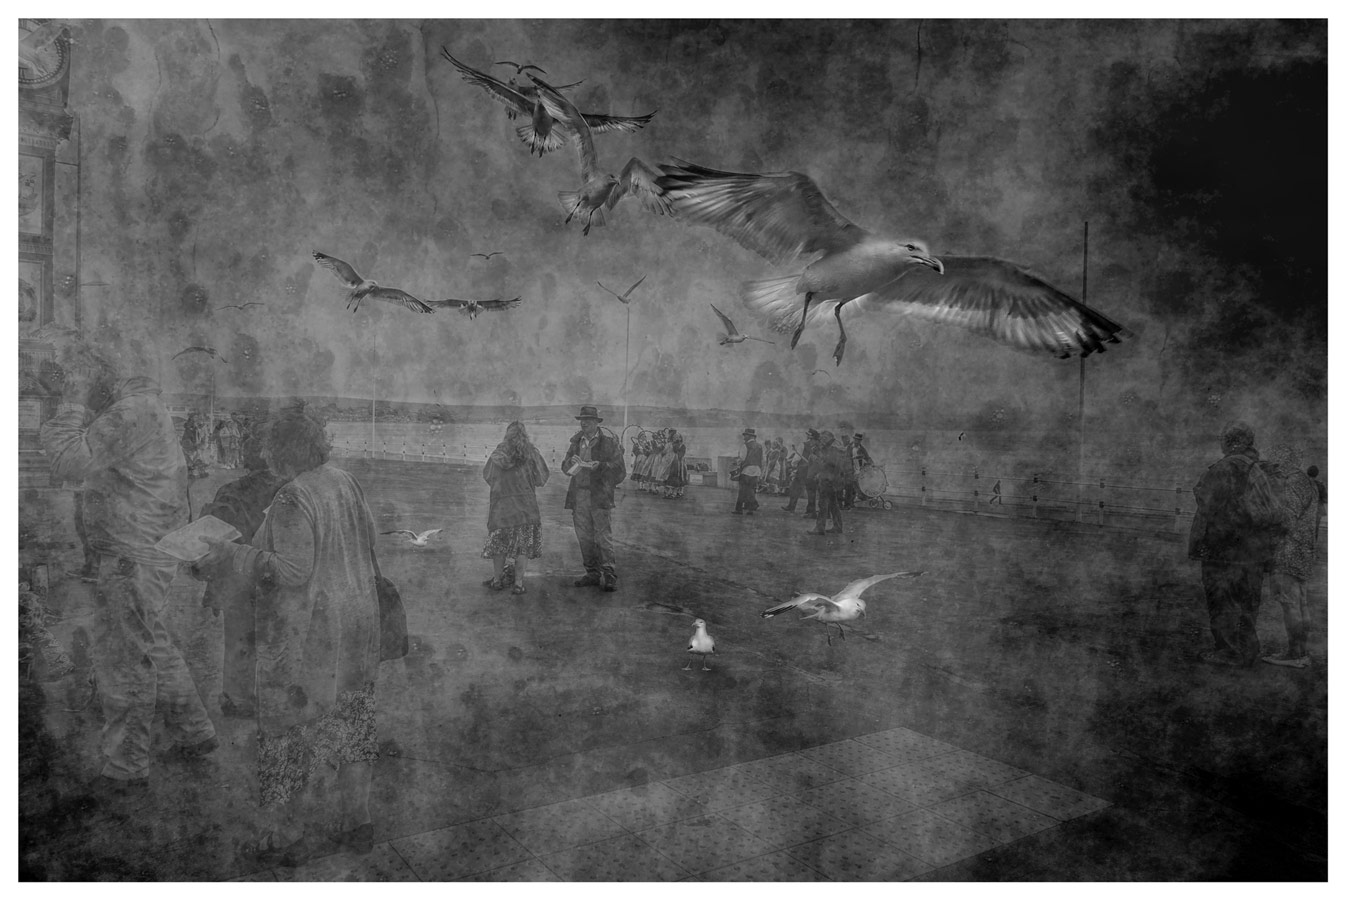 © Stephanus Meyer, Chaos, Weymouth Dorset - Photography 18 x 28, The Chelsea International Photography Competition